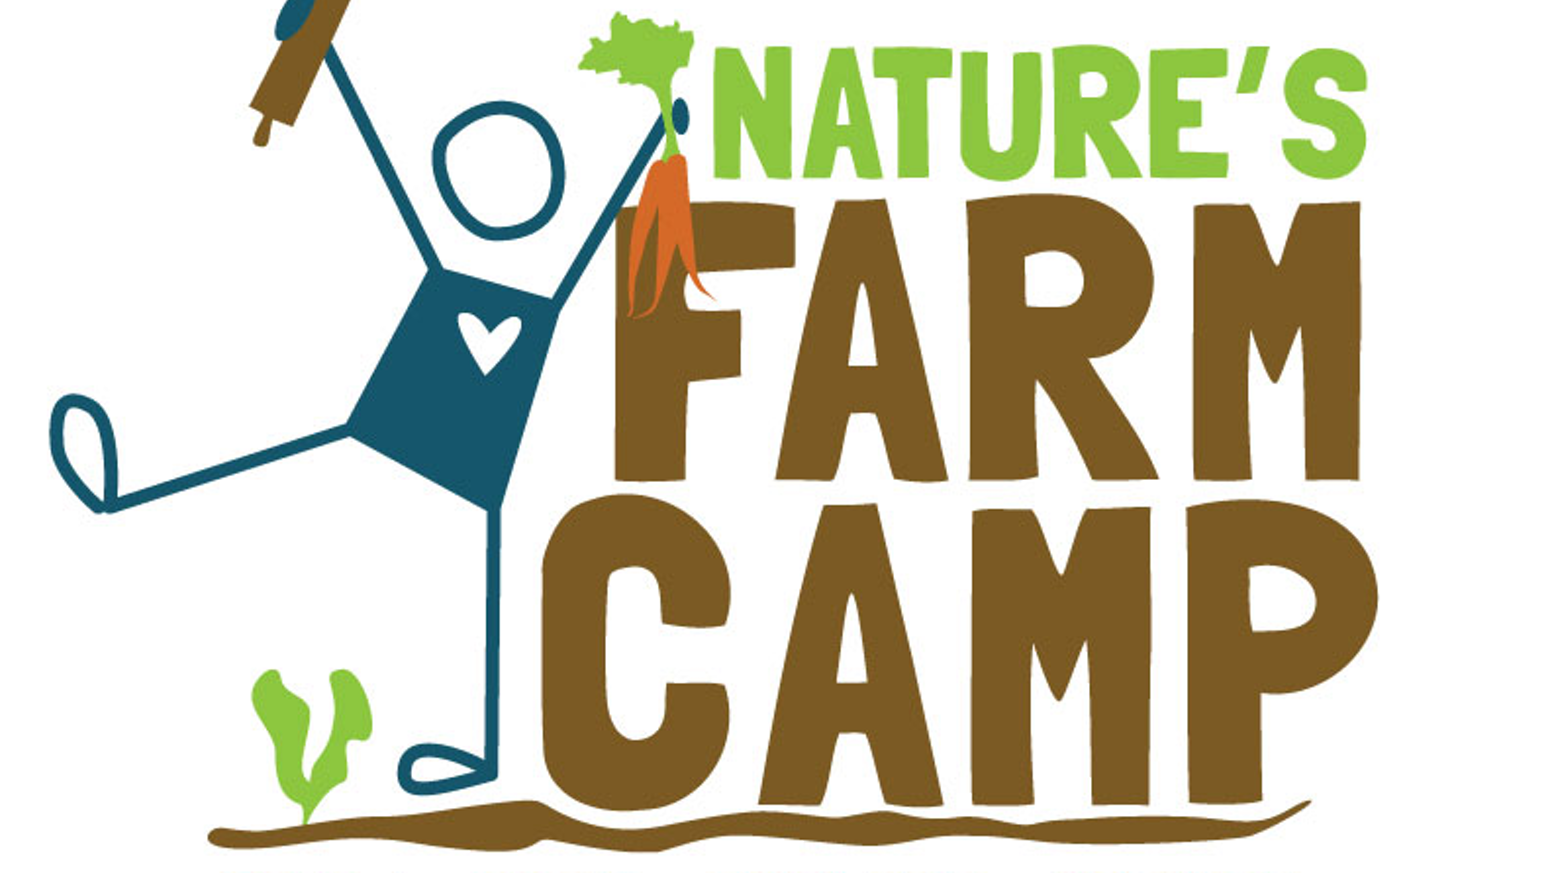 Nature's Farm Camp - Where Kids Grow, Cook, Explore & Create